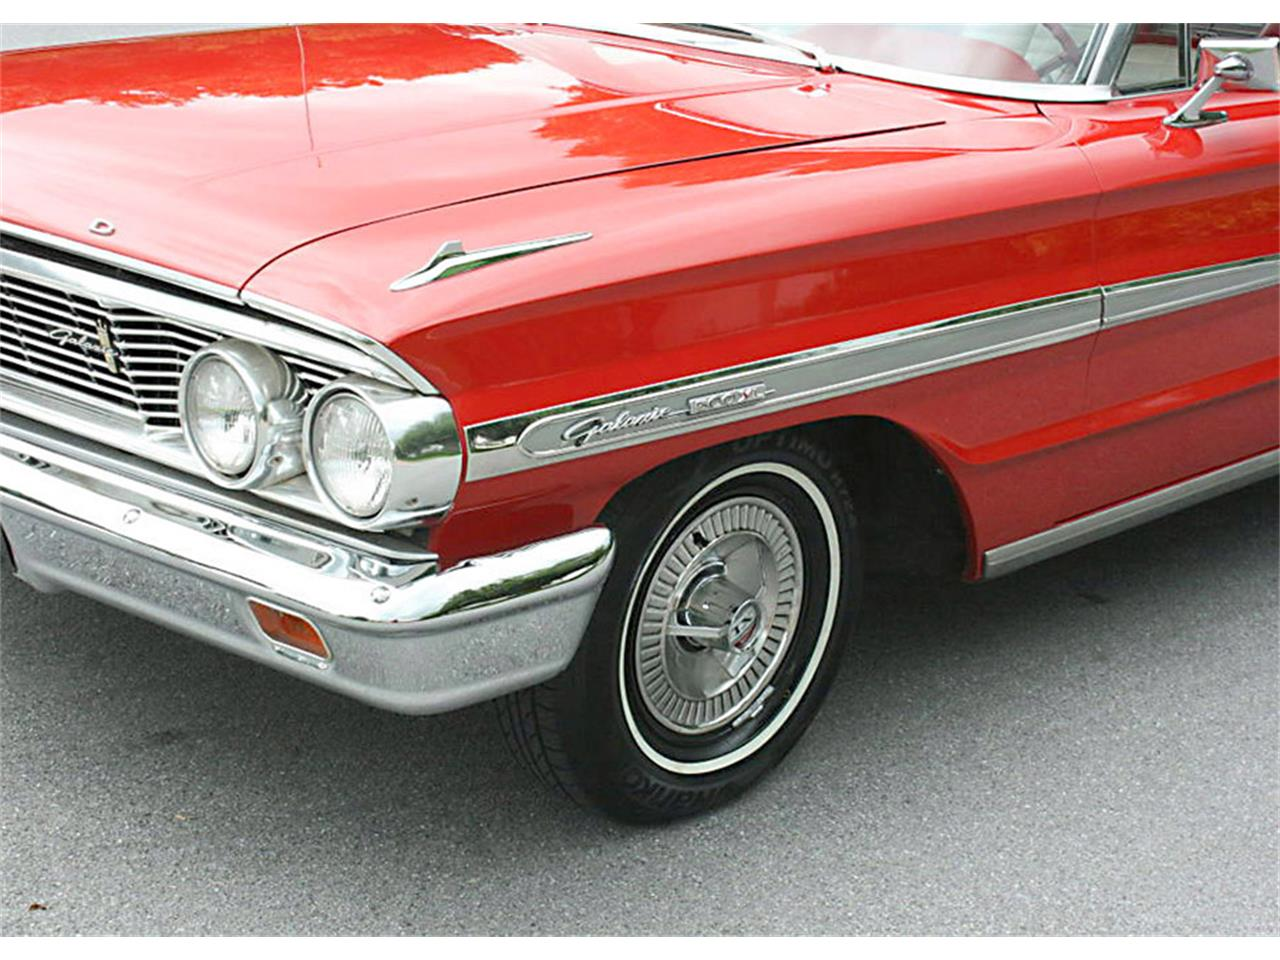 Large Picture of '64 Ford Galaxie 500 located in Lakeland Florida - $27,500.00 Offered by MJC Classic Cars - NOH3